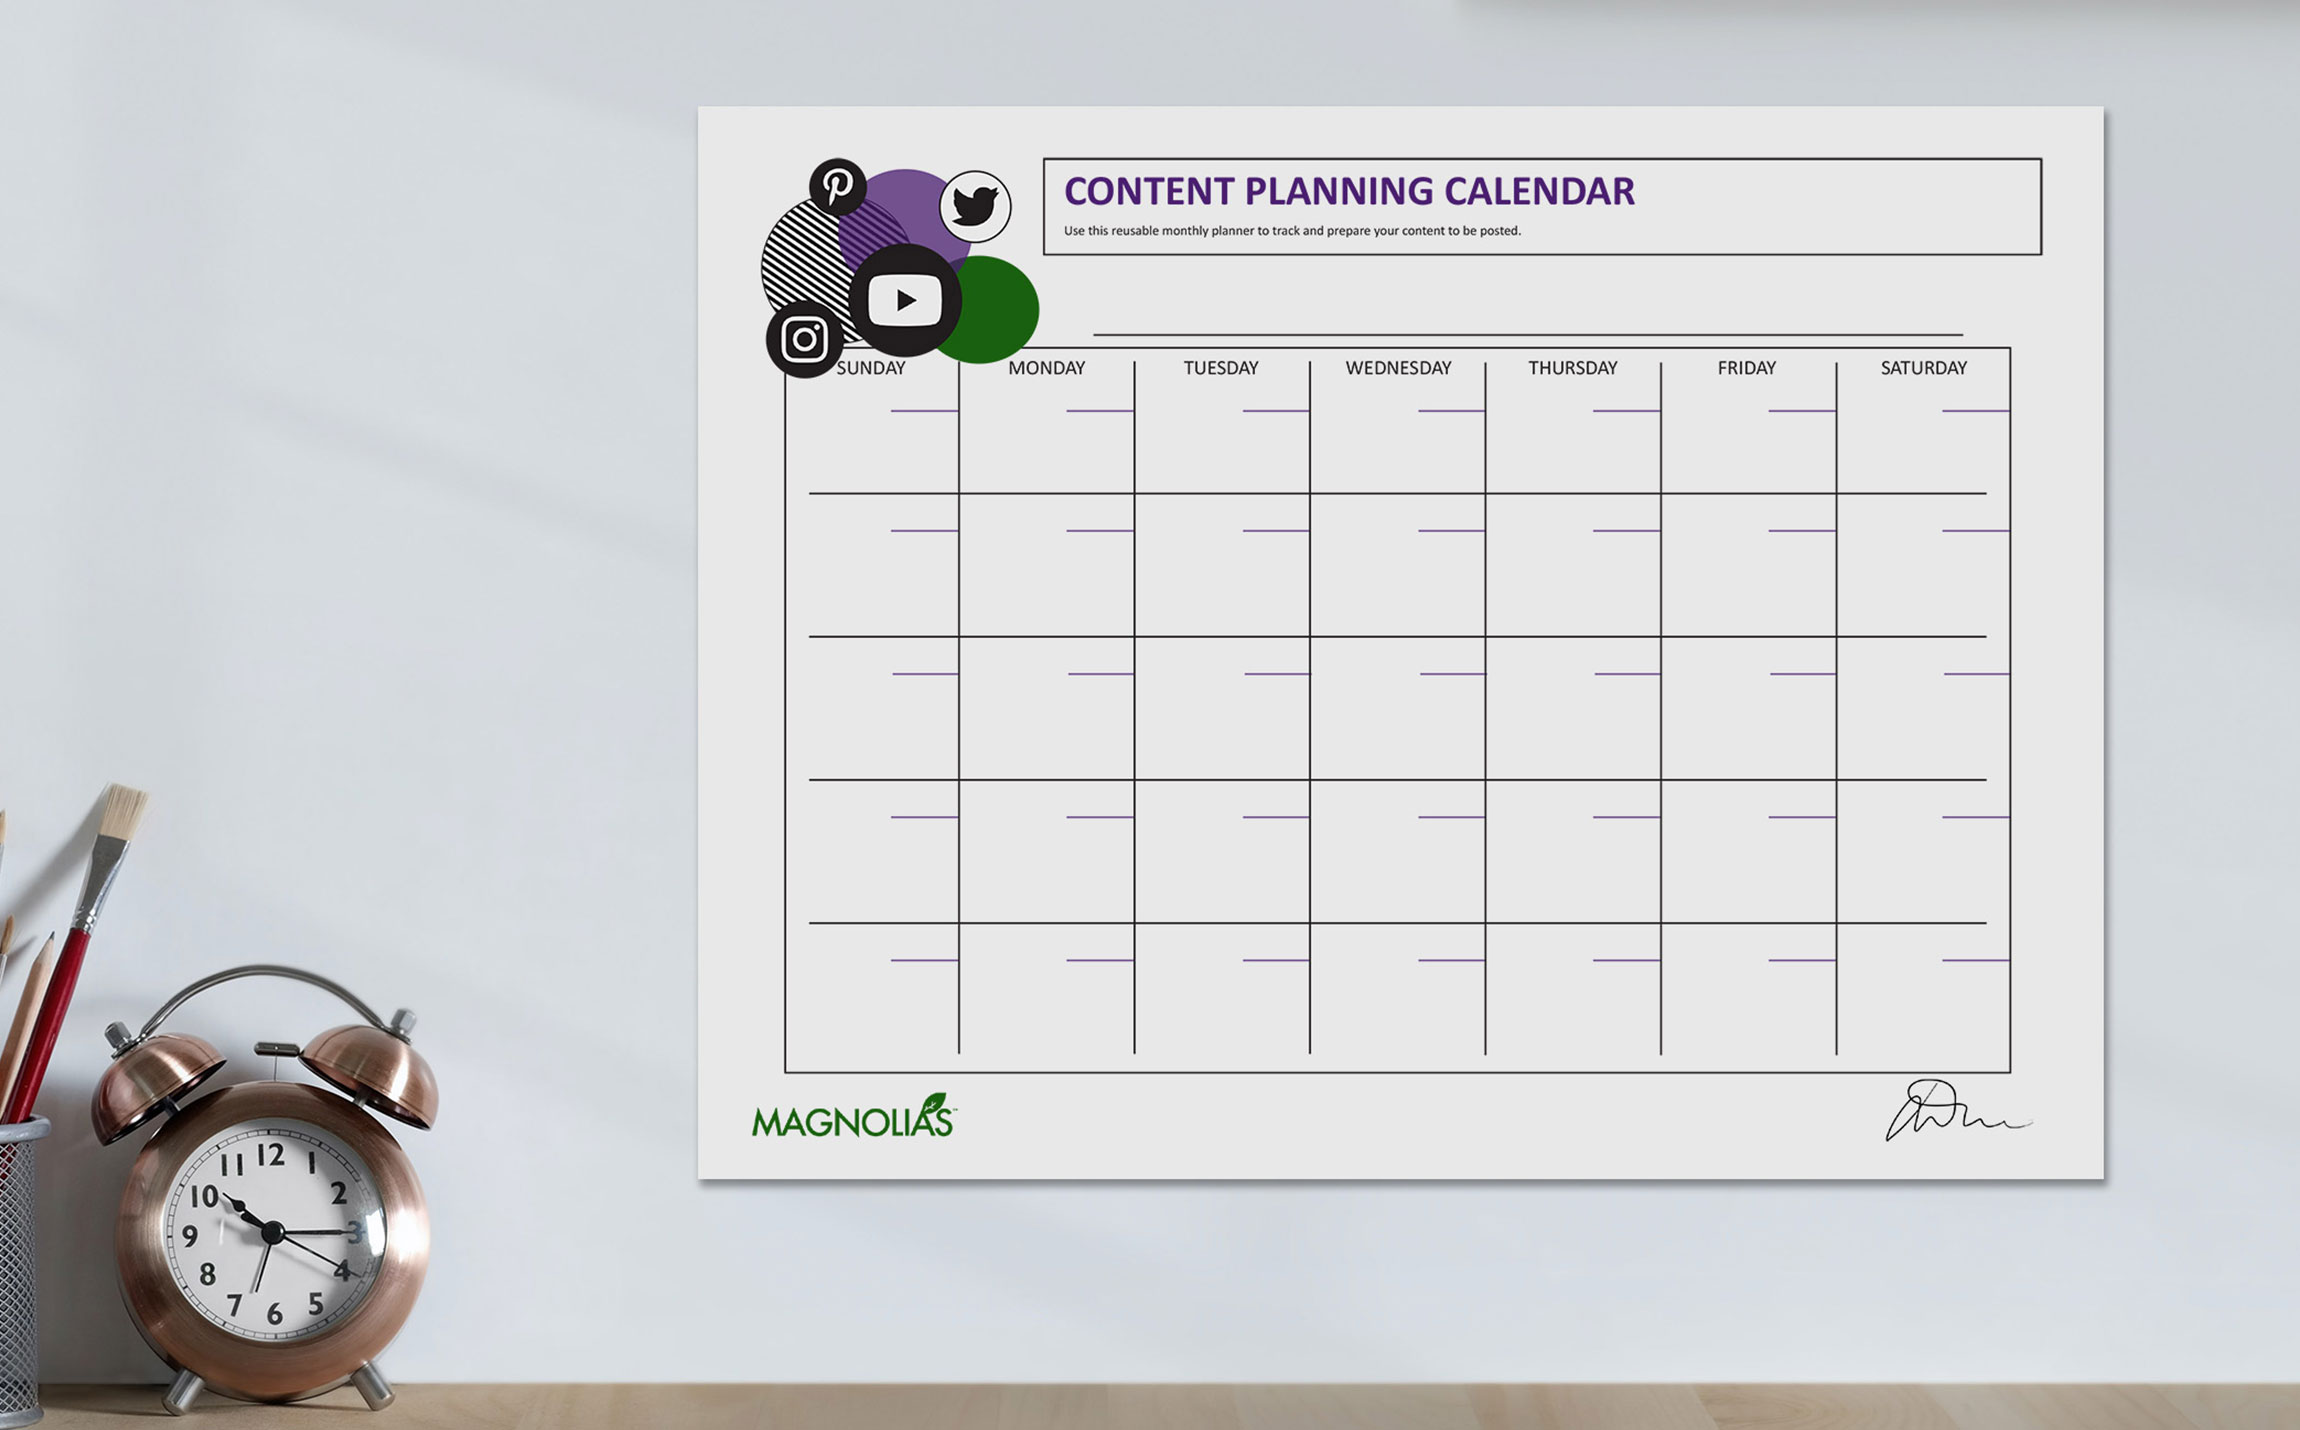 Plan social media content with this free content calendar. Important dates and social media content ideas included in the free PDF download.